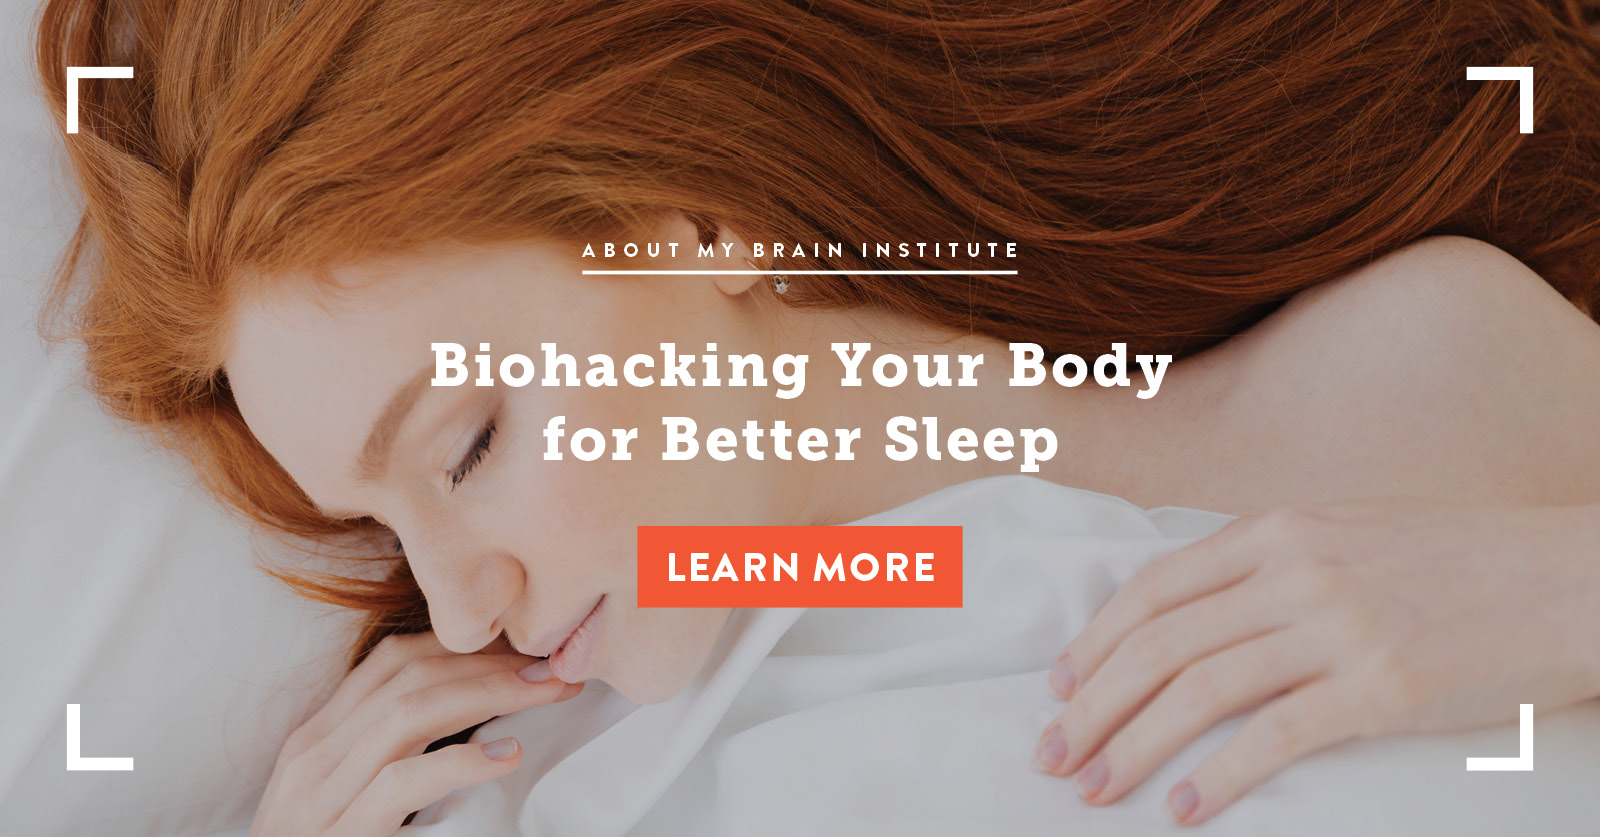 Biohacking Your Body for Better Sleep